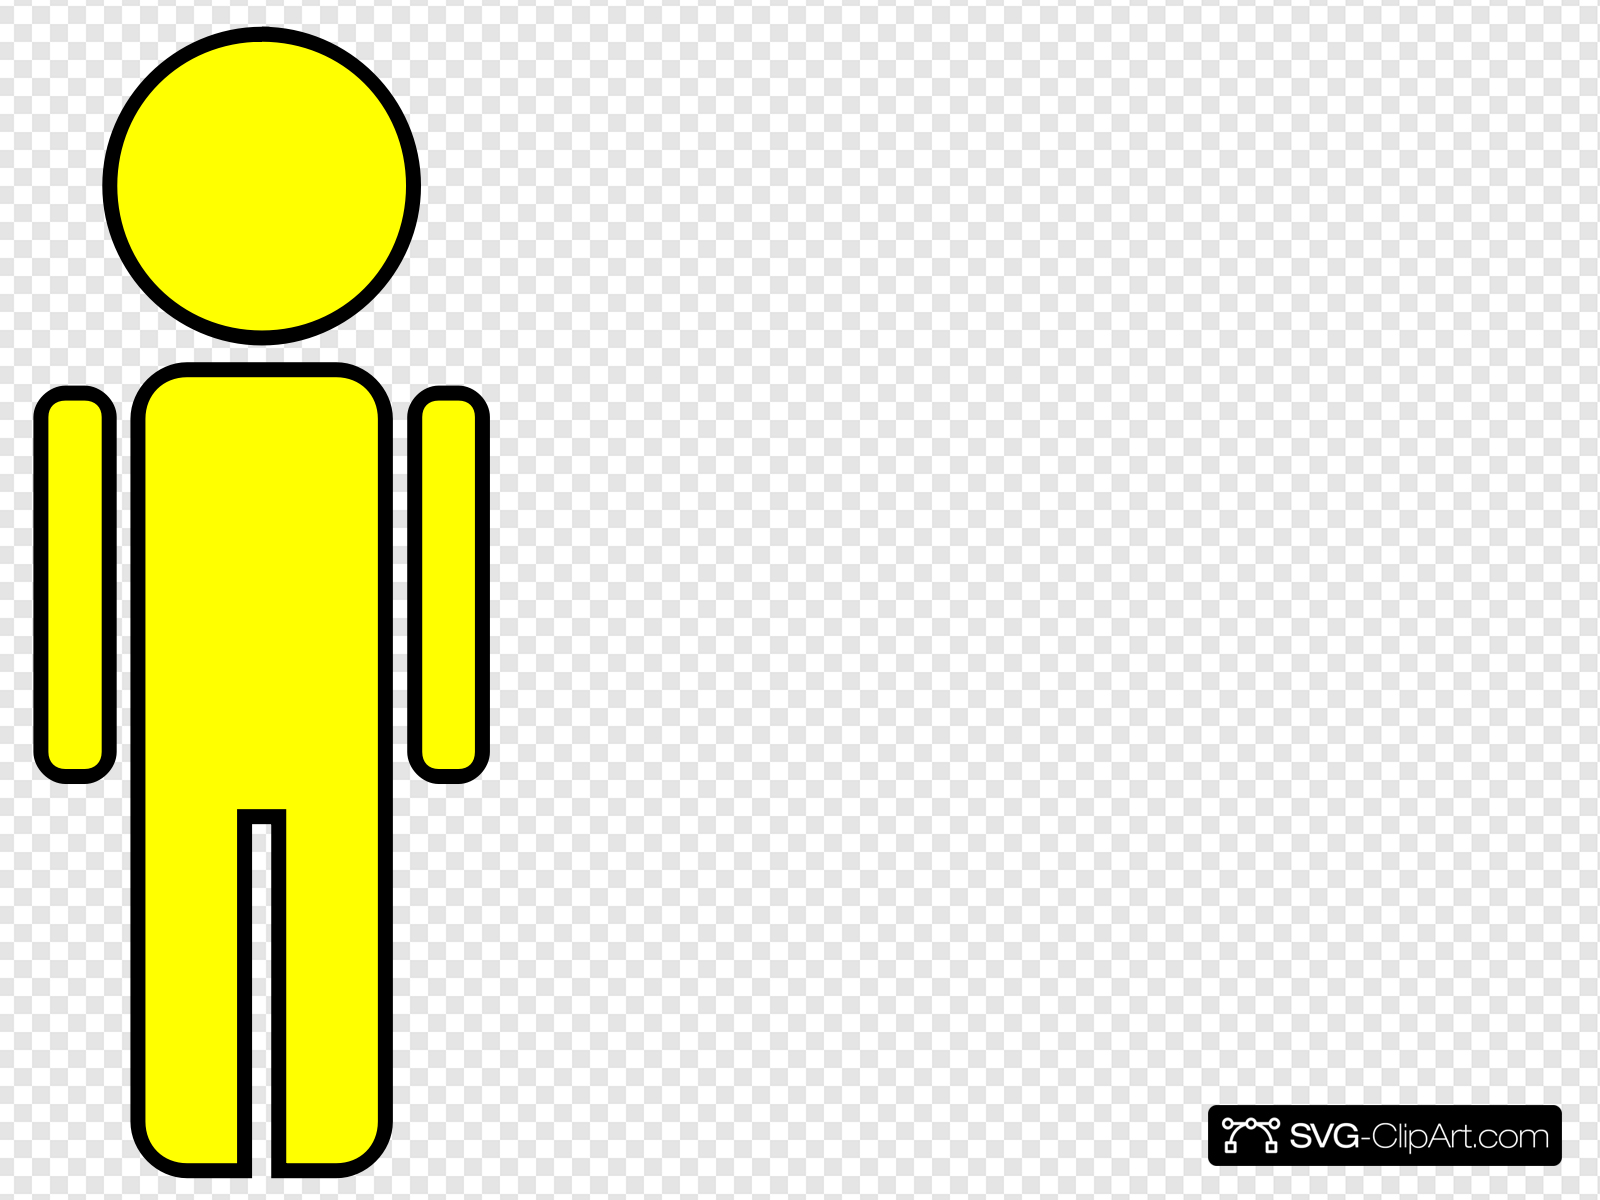 Stick Figure Man Yellow Clip art, Icon and SVG.